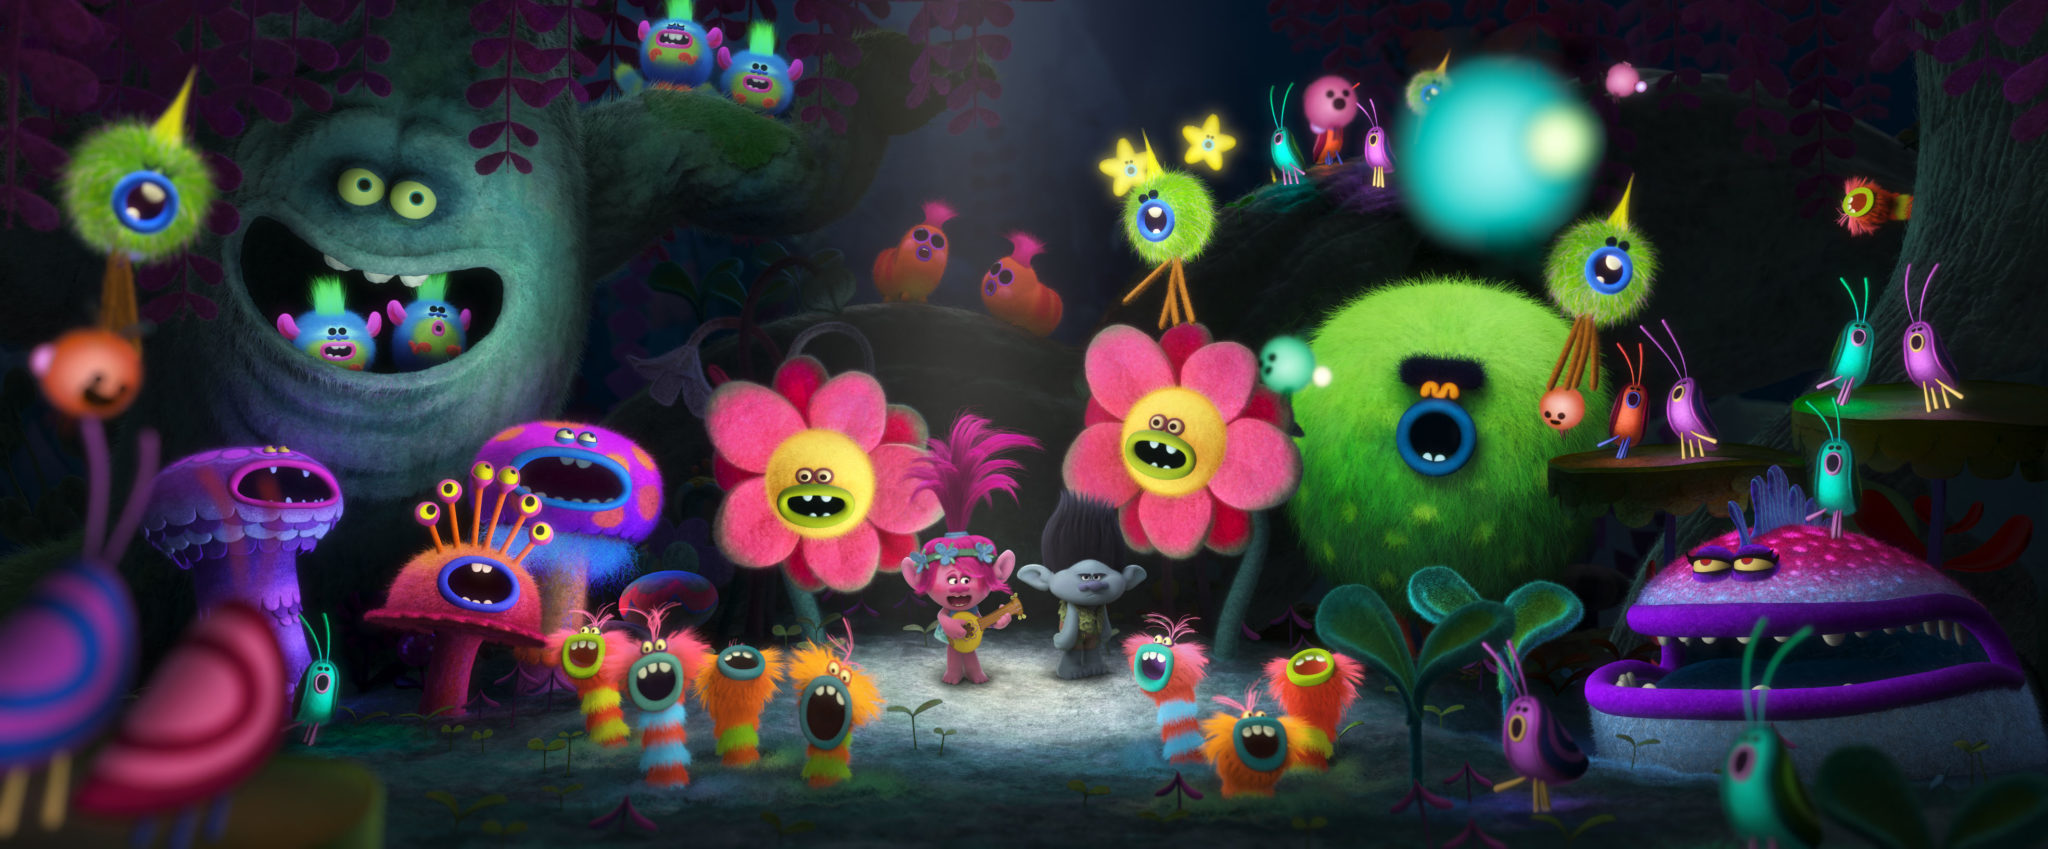 Two New Stills From DreamWorks' 'Trolls' Released Online ... Justin Timberlake Can T Stop The Feeling